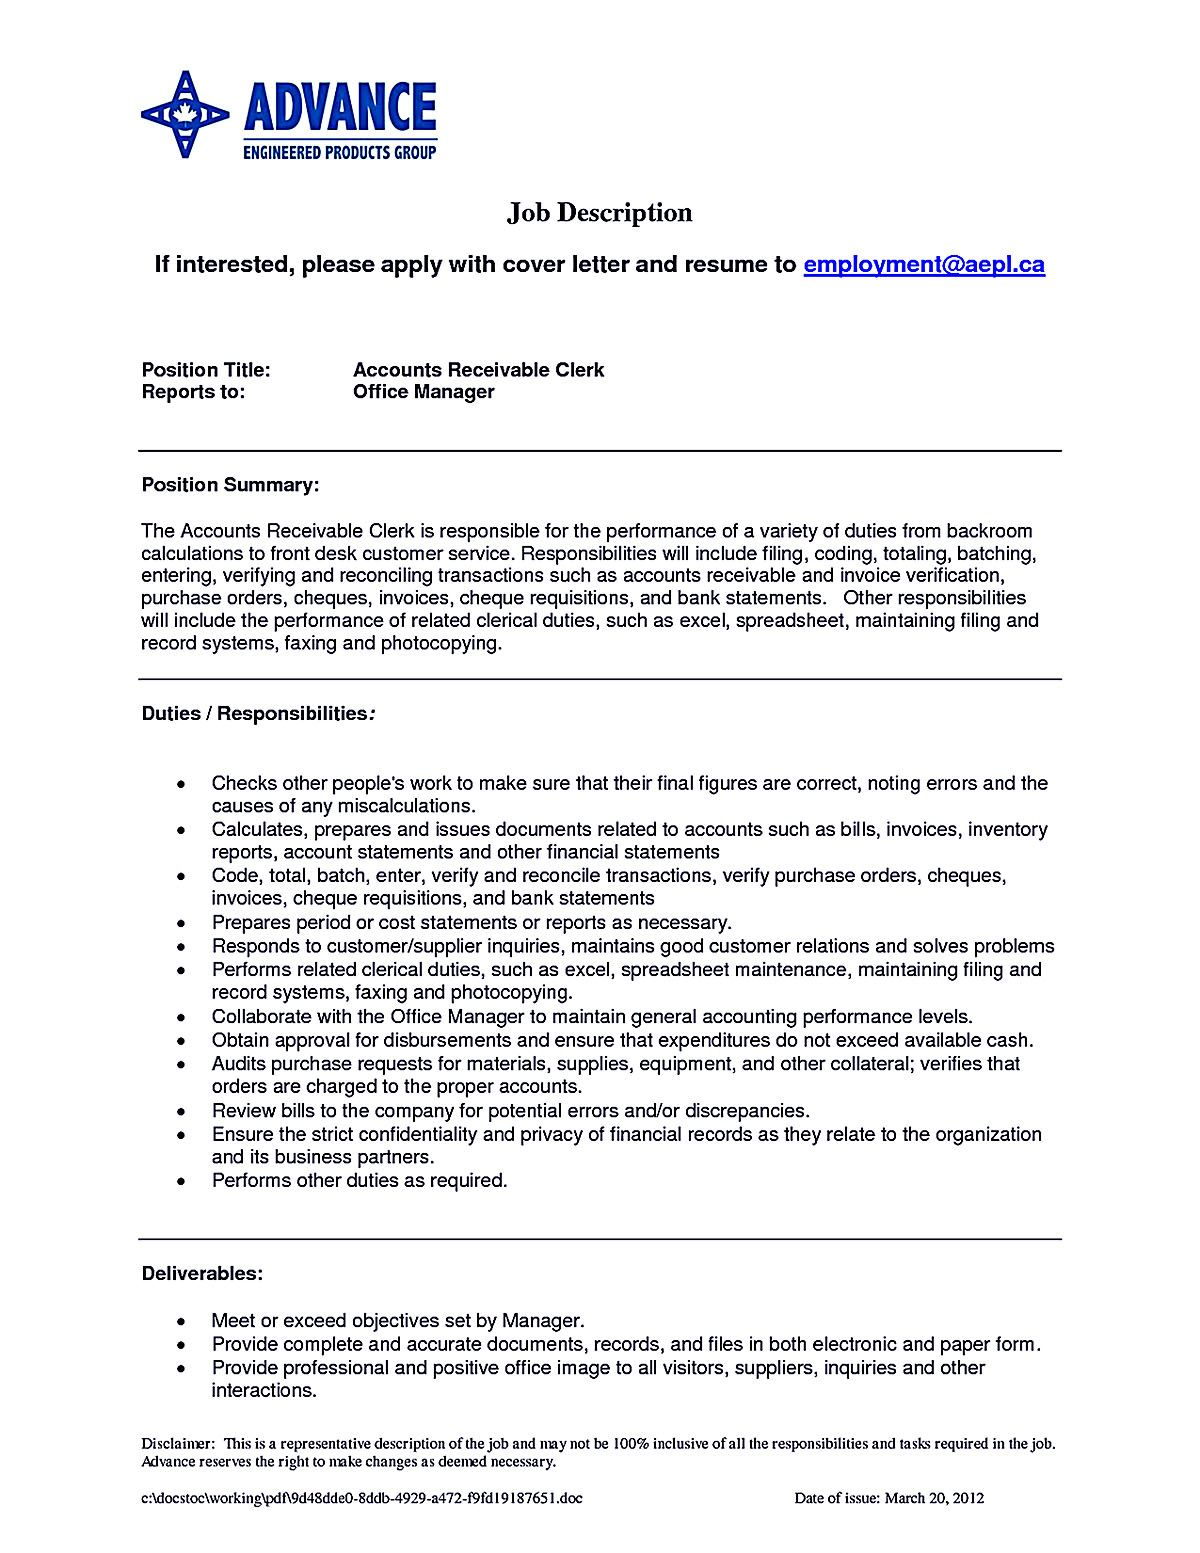 account receivable resume shows both technical and interpersonal account receivable resume shows both technical and interpersonal skills you have your professional summary or profile must be included short of